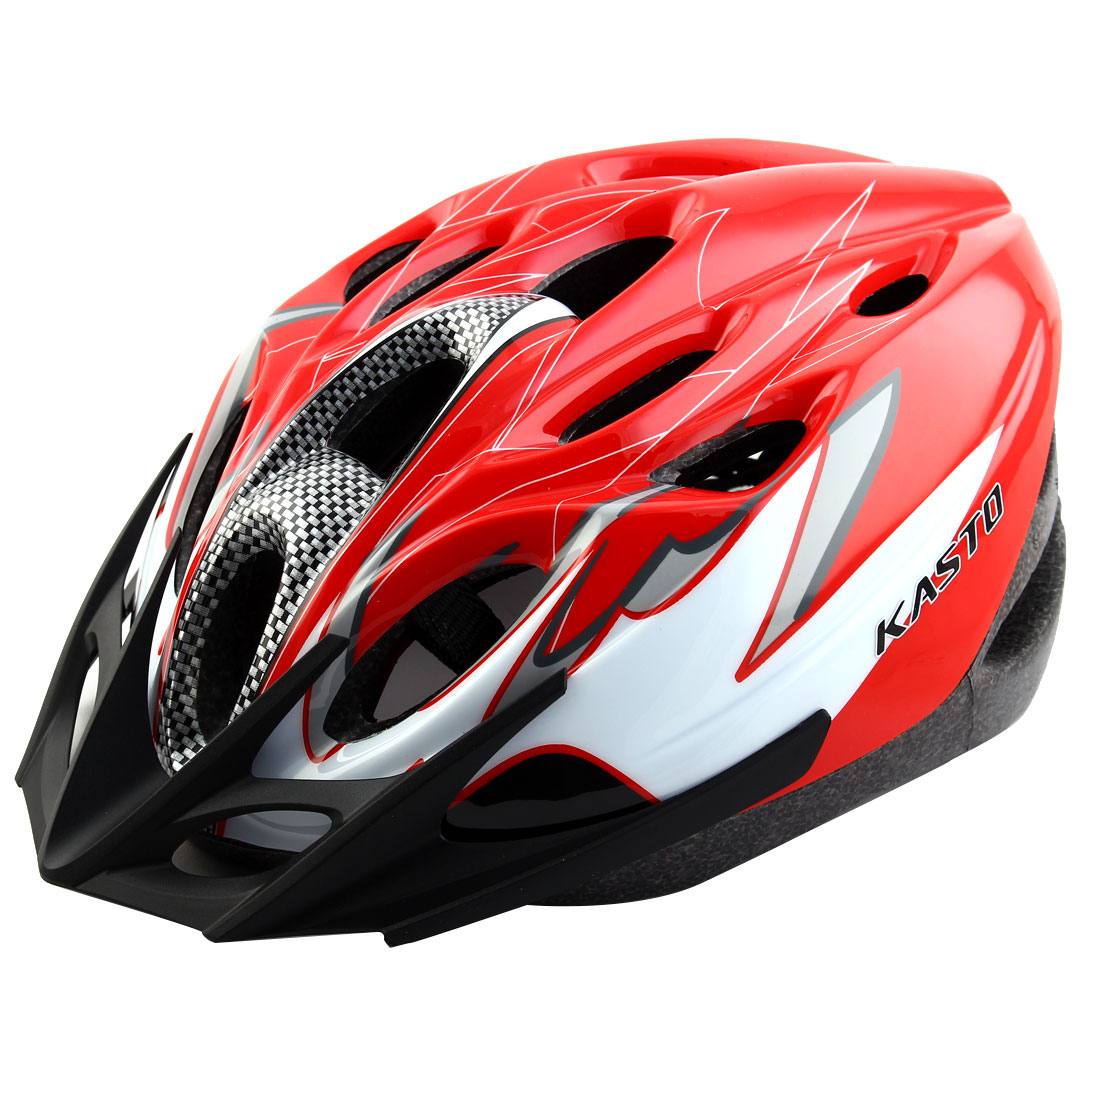 Adult 18 Holes Removable Visor Outdoor Sports Cap Head Protector Hat Adjustable Cycling Biking Helmet Red